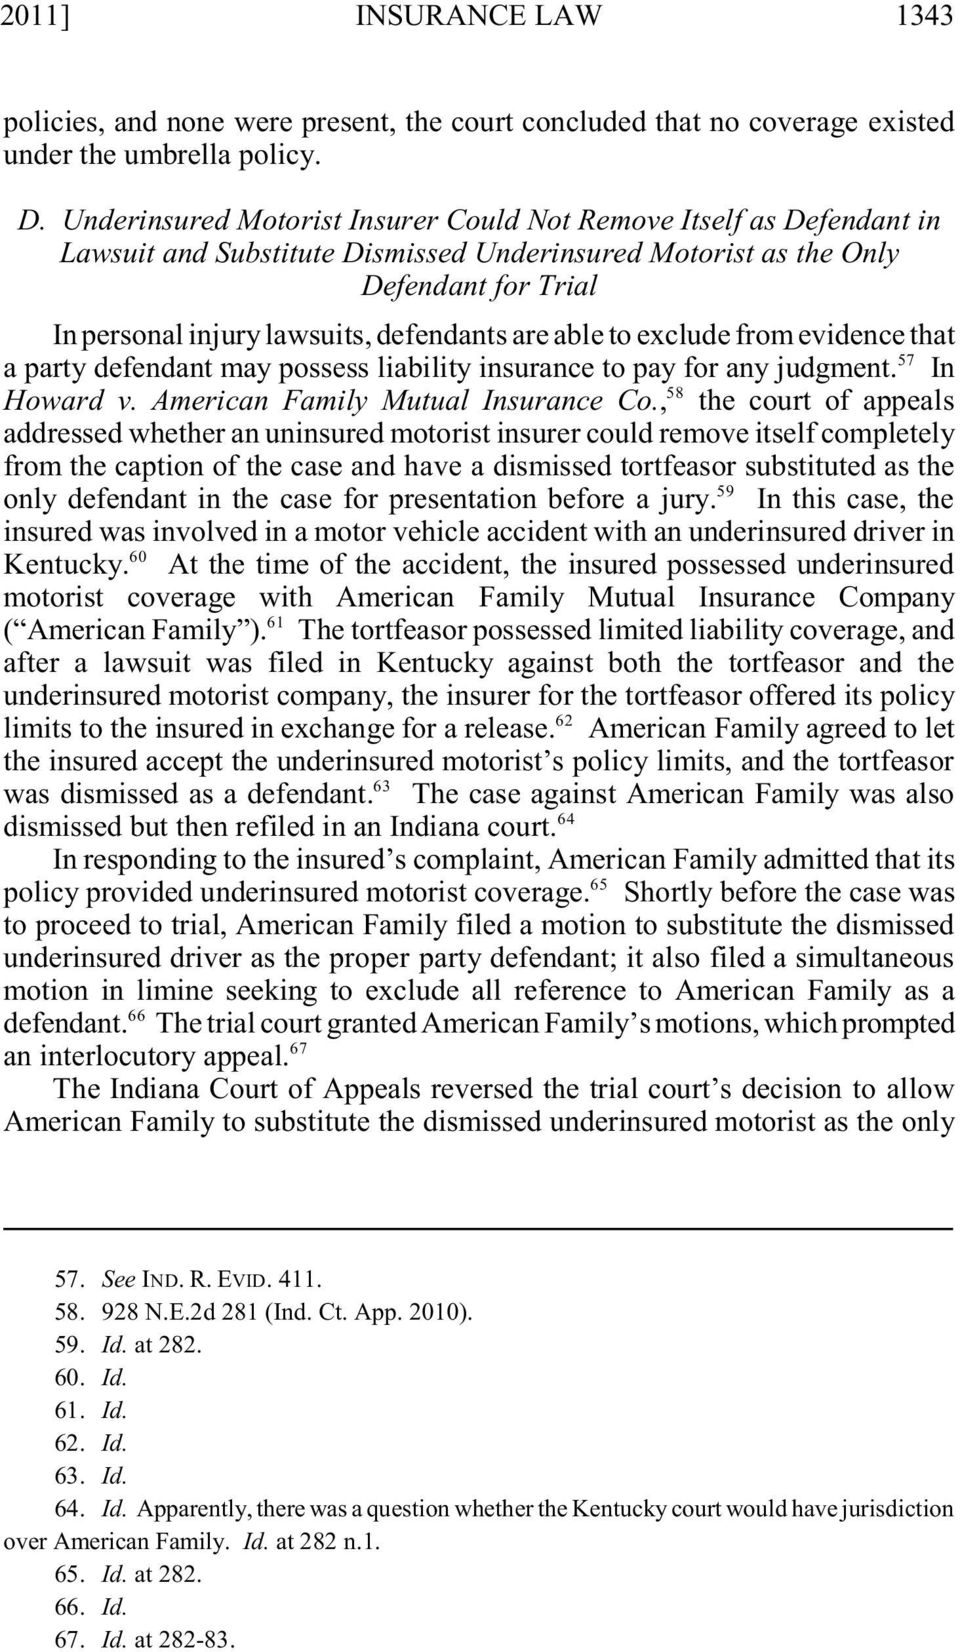 are able to exclude from evidence that 57 a party defendant may possess liability insurance to pay for any judgment. In 58 Howard v. American Family Mutual Insurance Co.